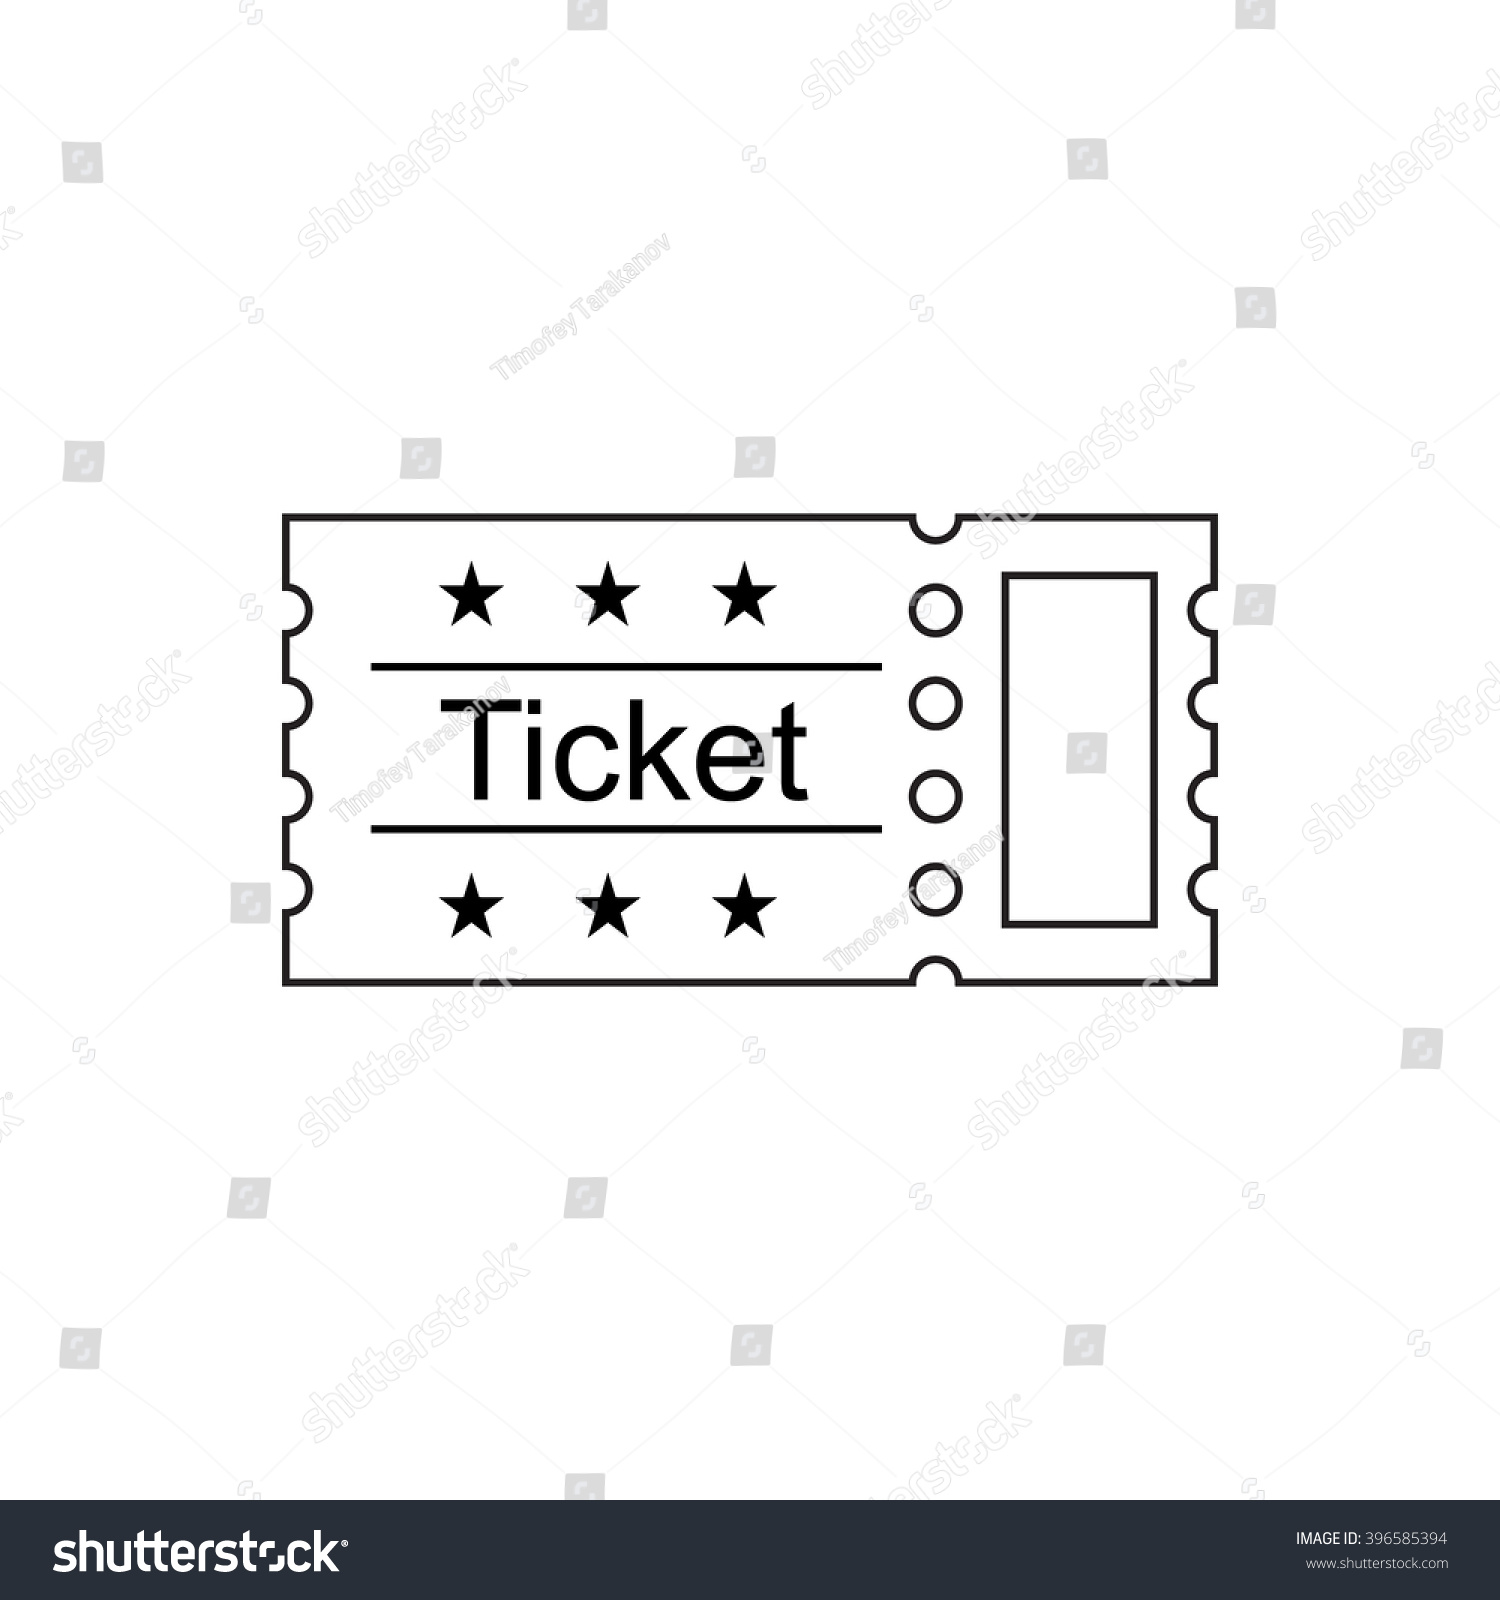 Ticket Icon In The Outline Style Vector Illustration Ticket Stub – Ticket Outline